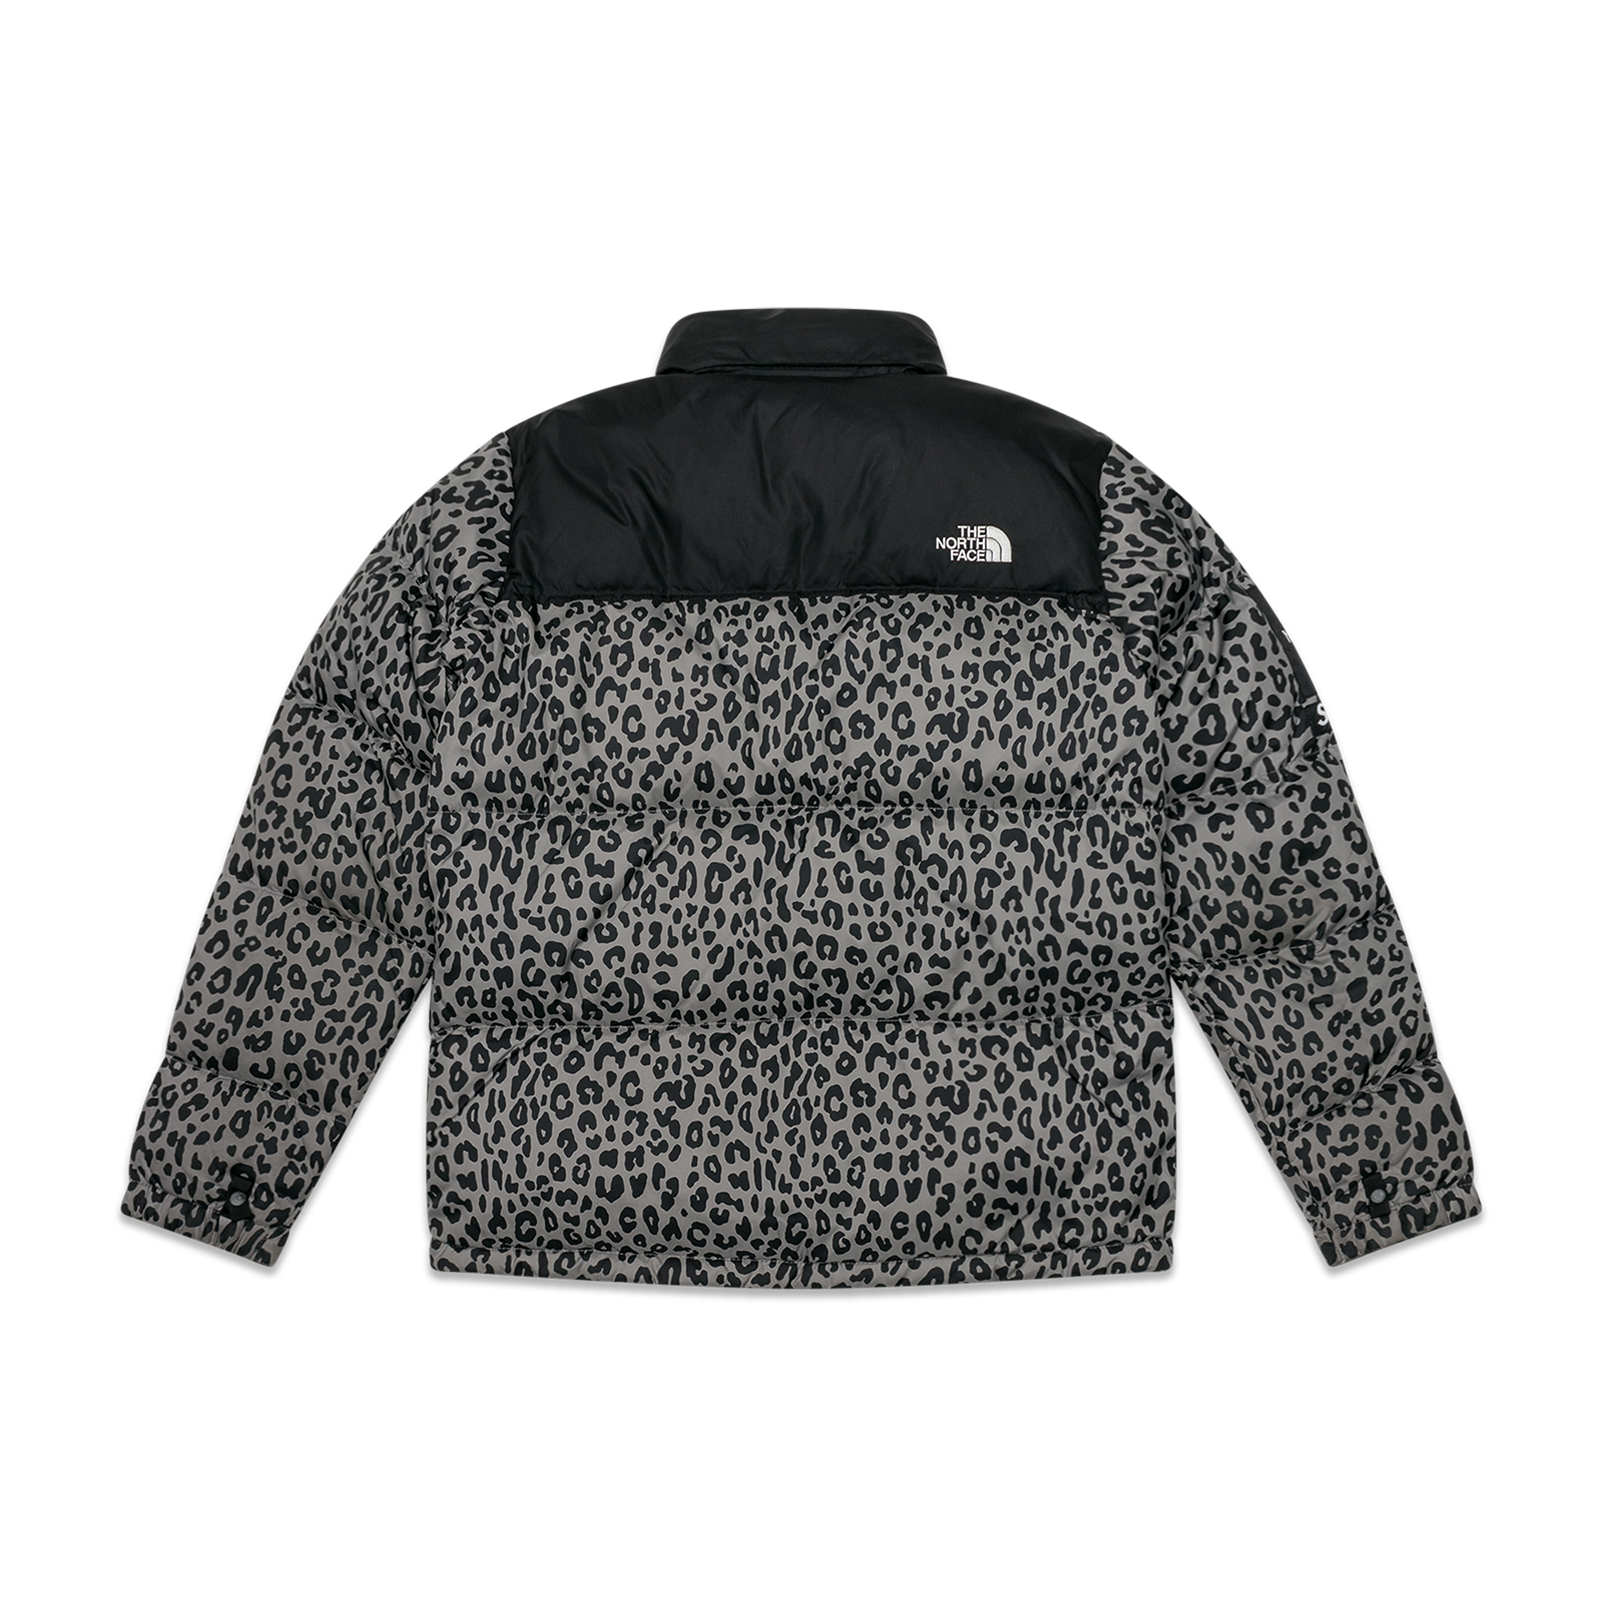 Flat lay jacket product picture